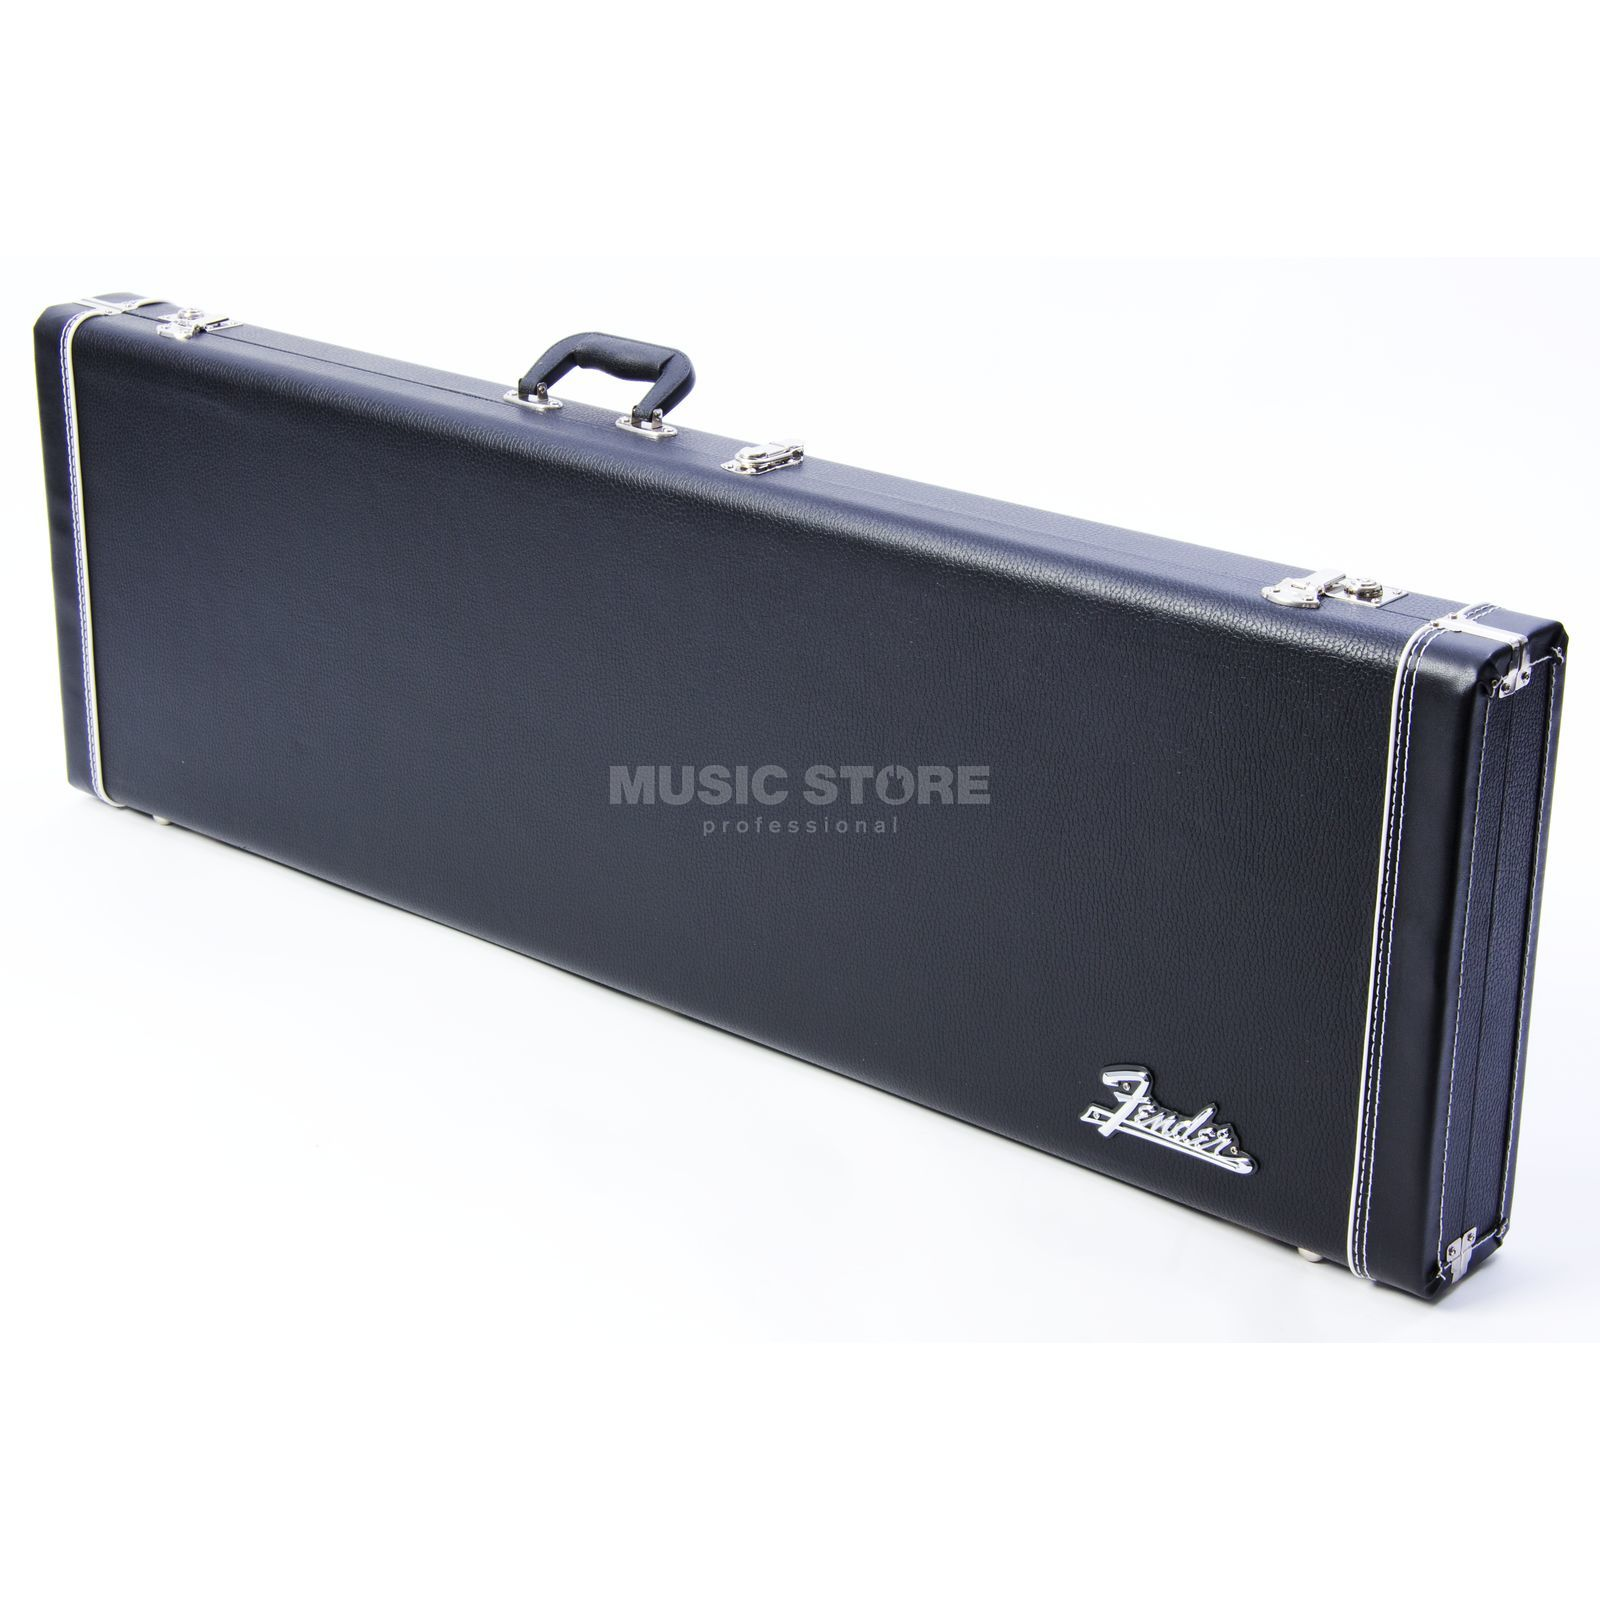 Fender Pro Series P/J Bass Case Black Product Image